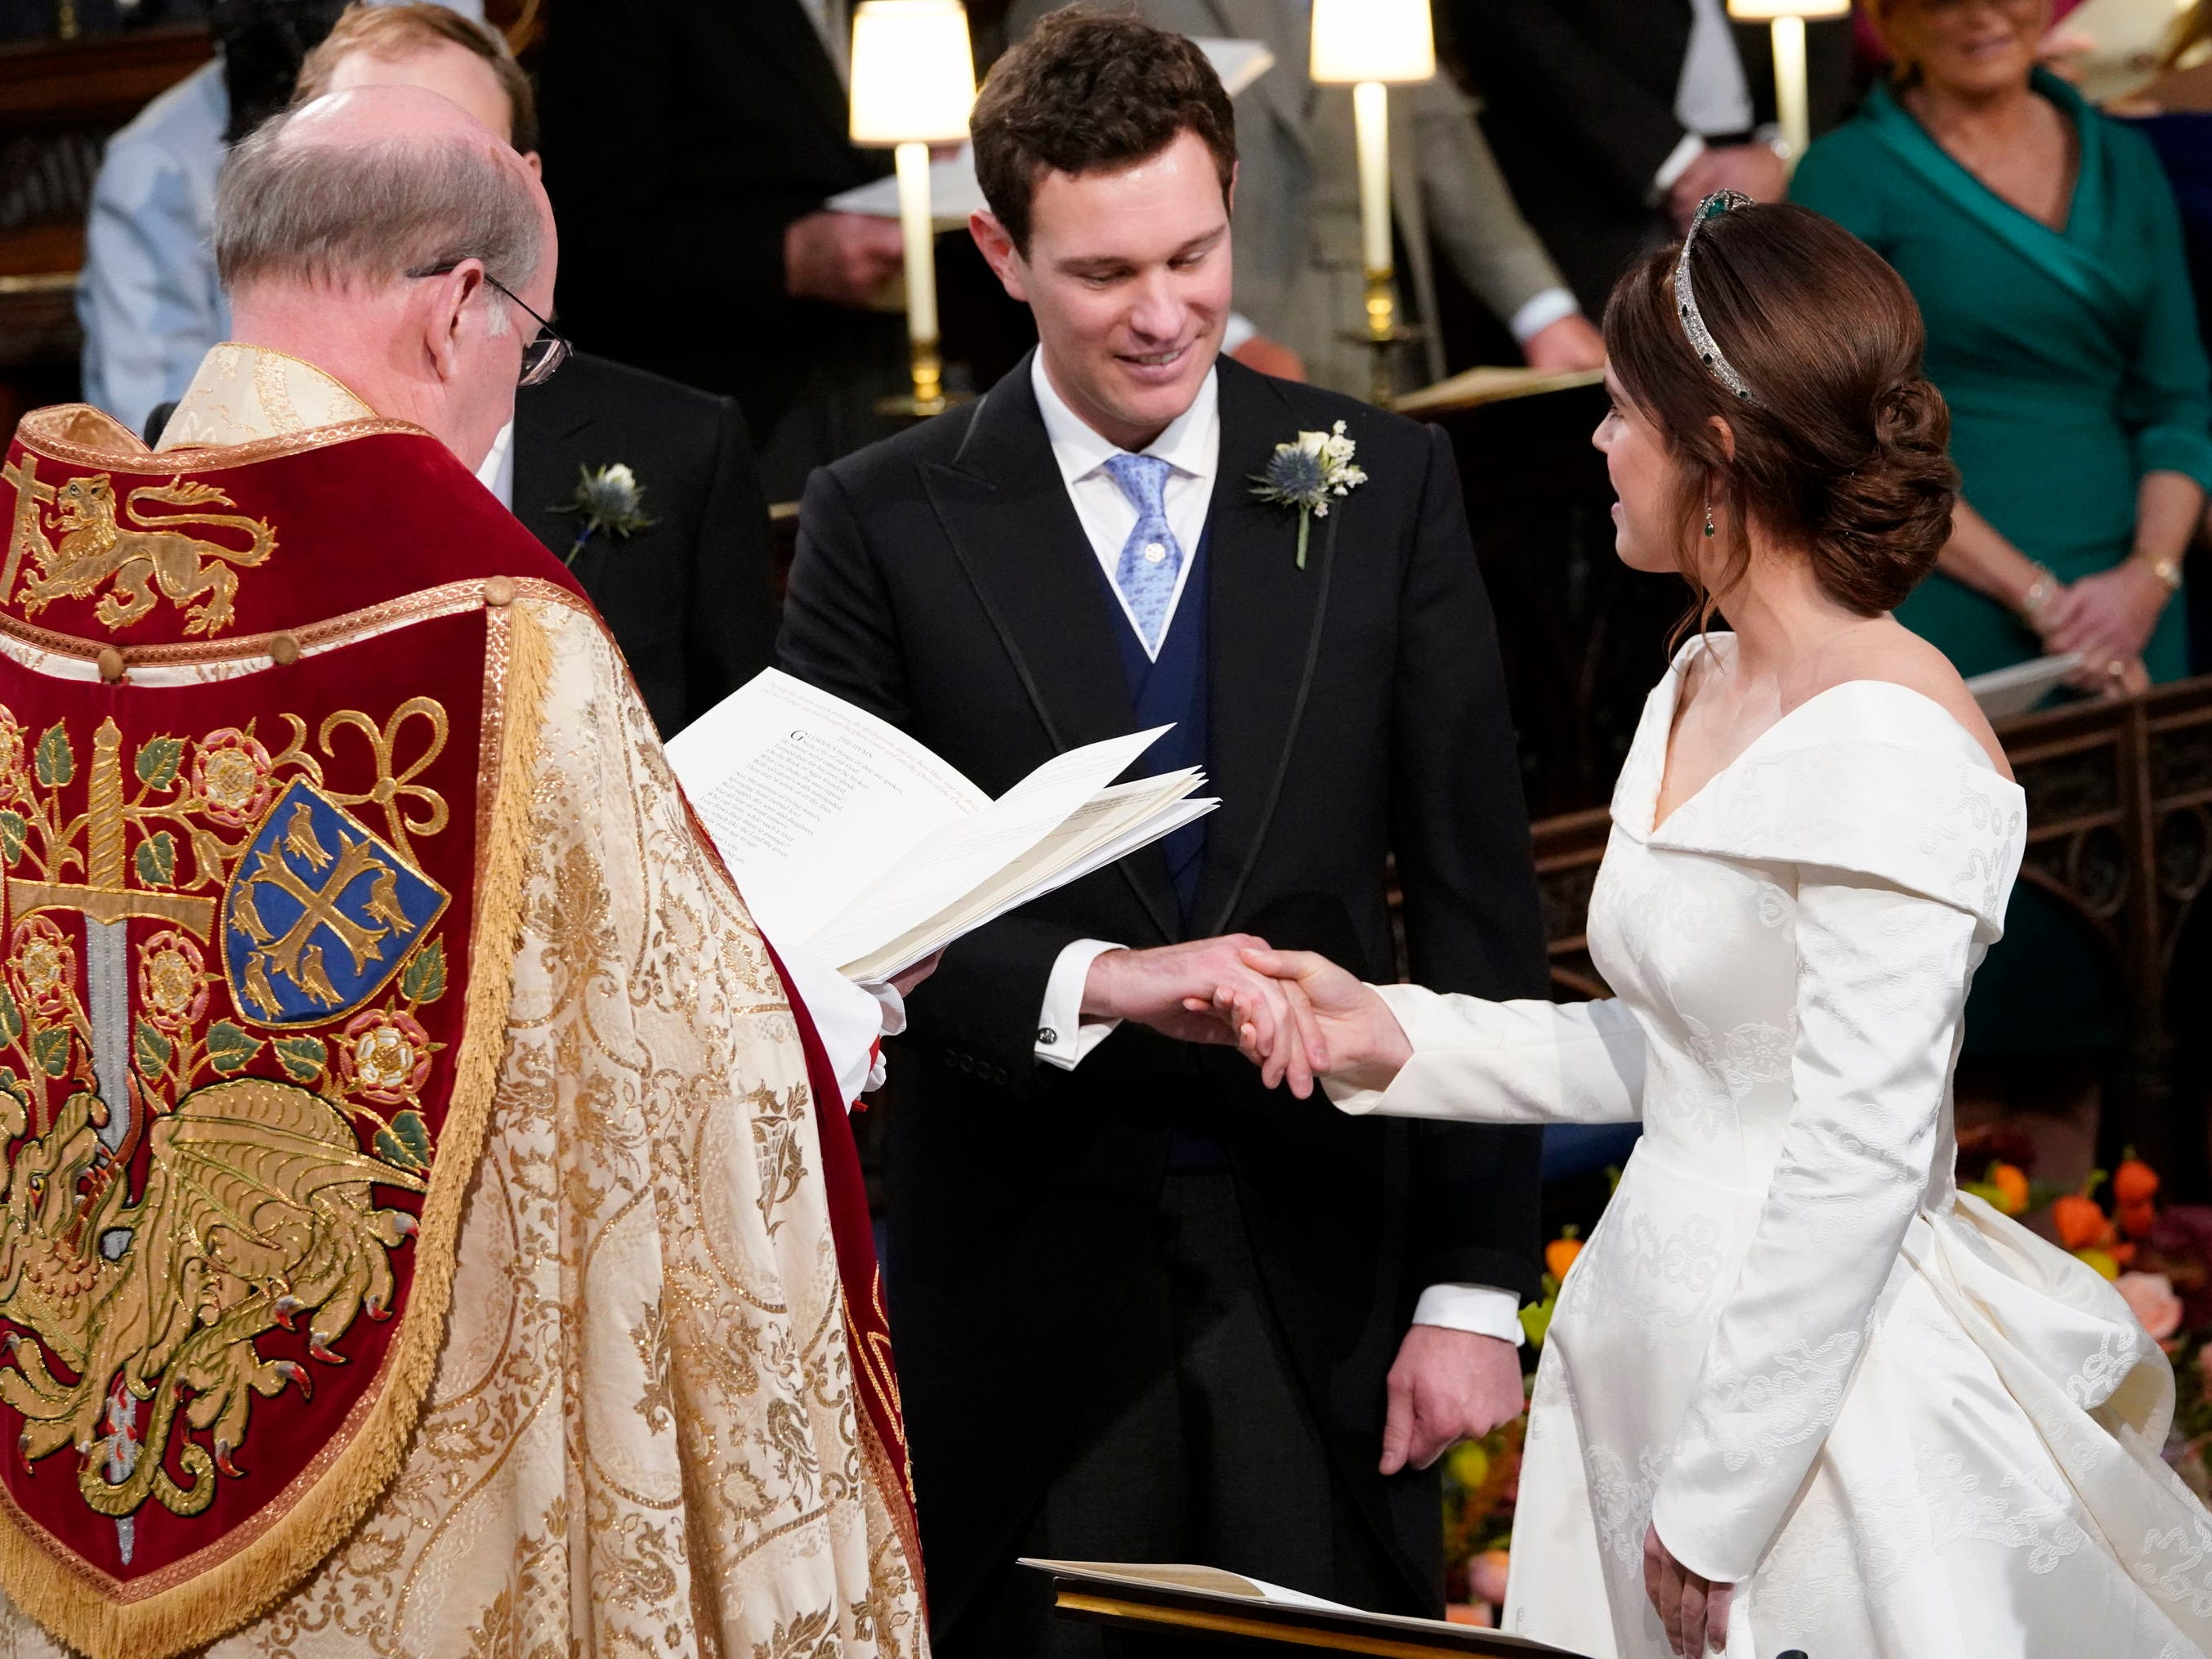 Britain's Princess Eugenie and Jack Brooksbank during their wedding ceremony.